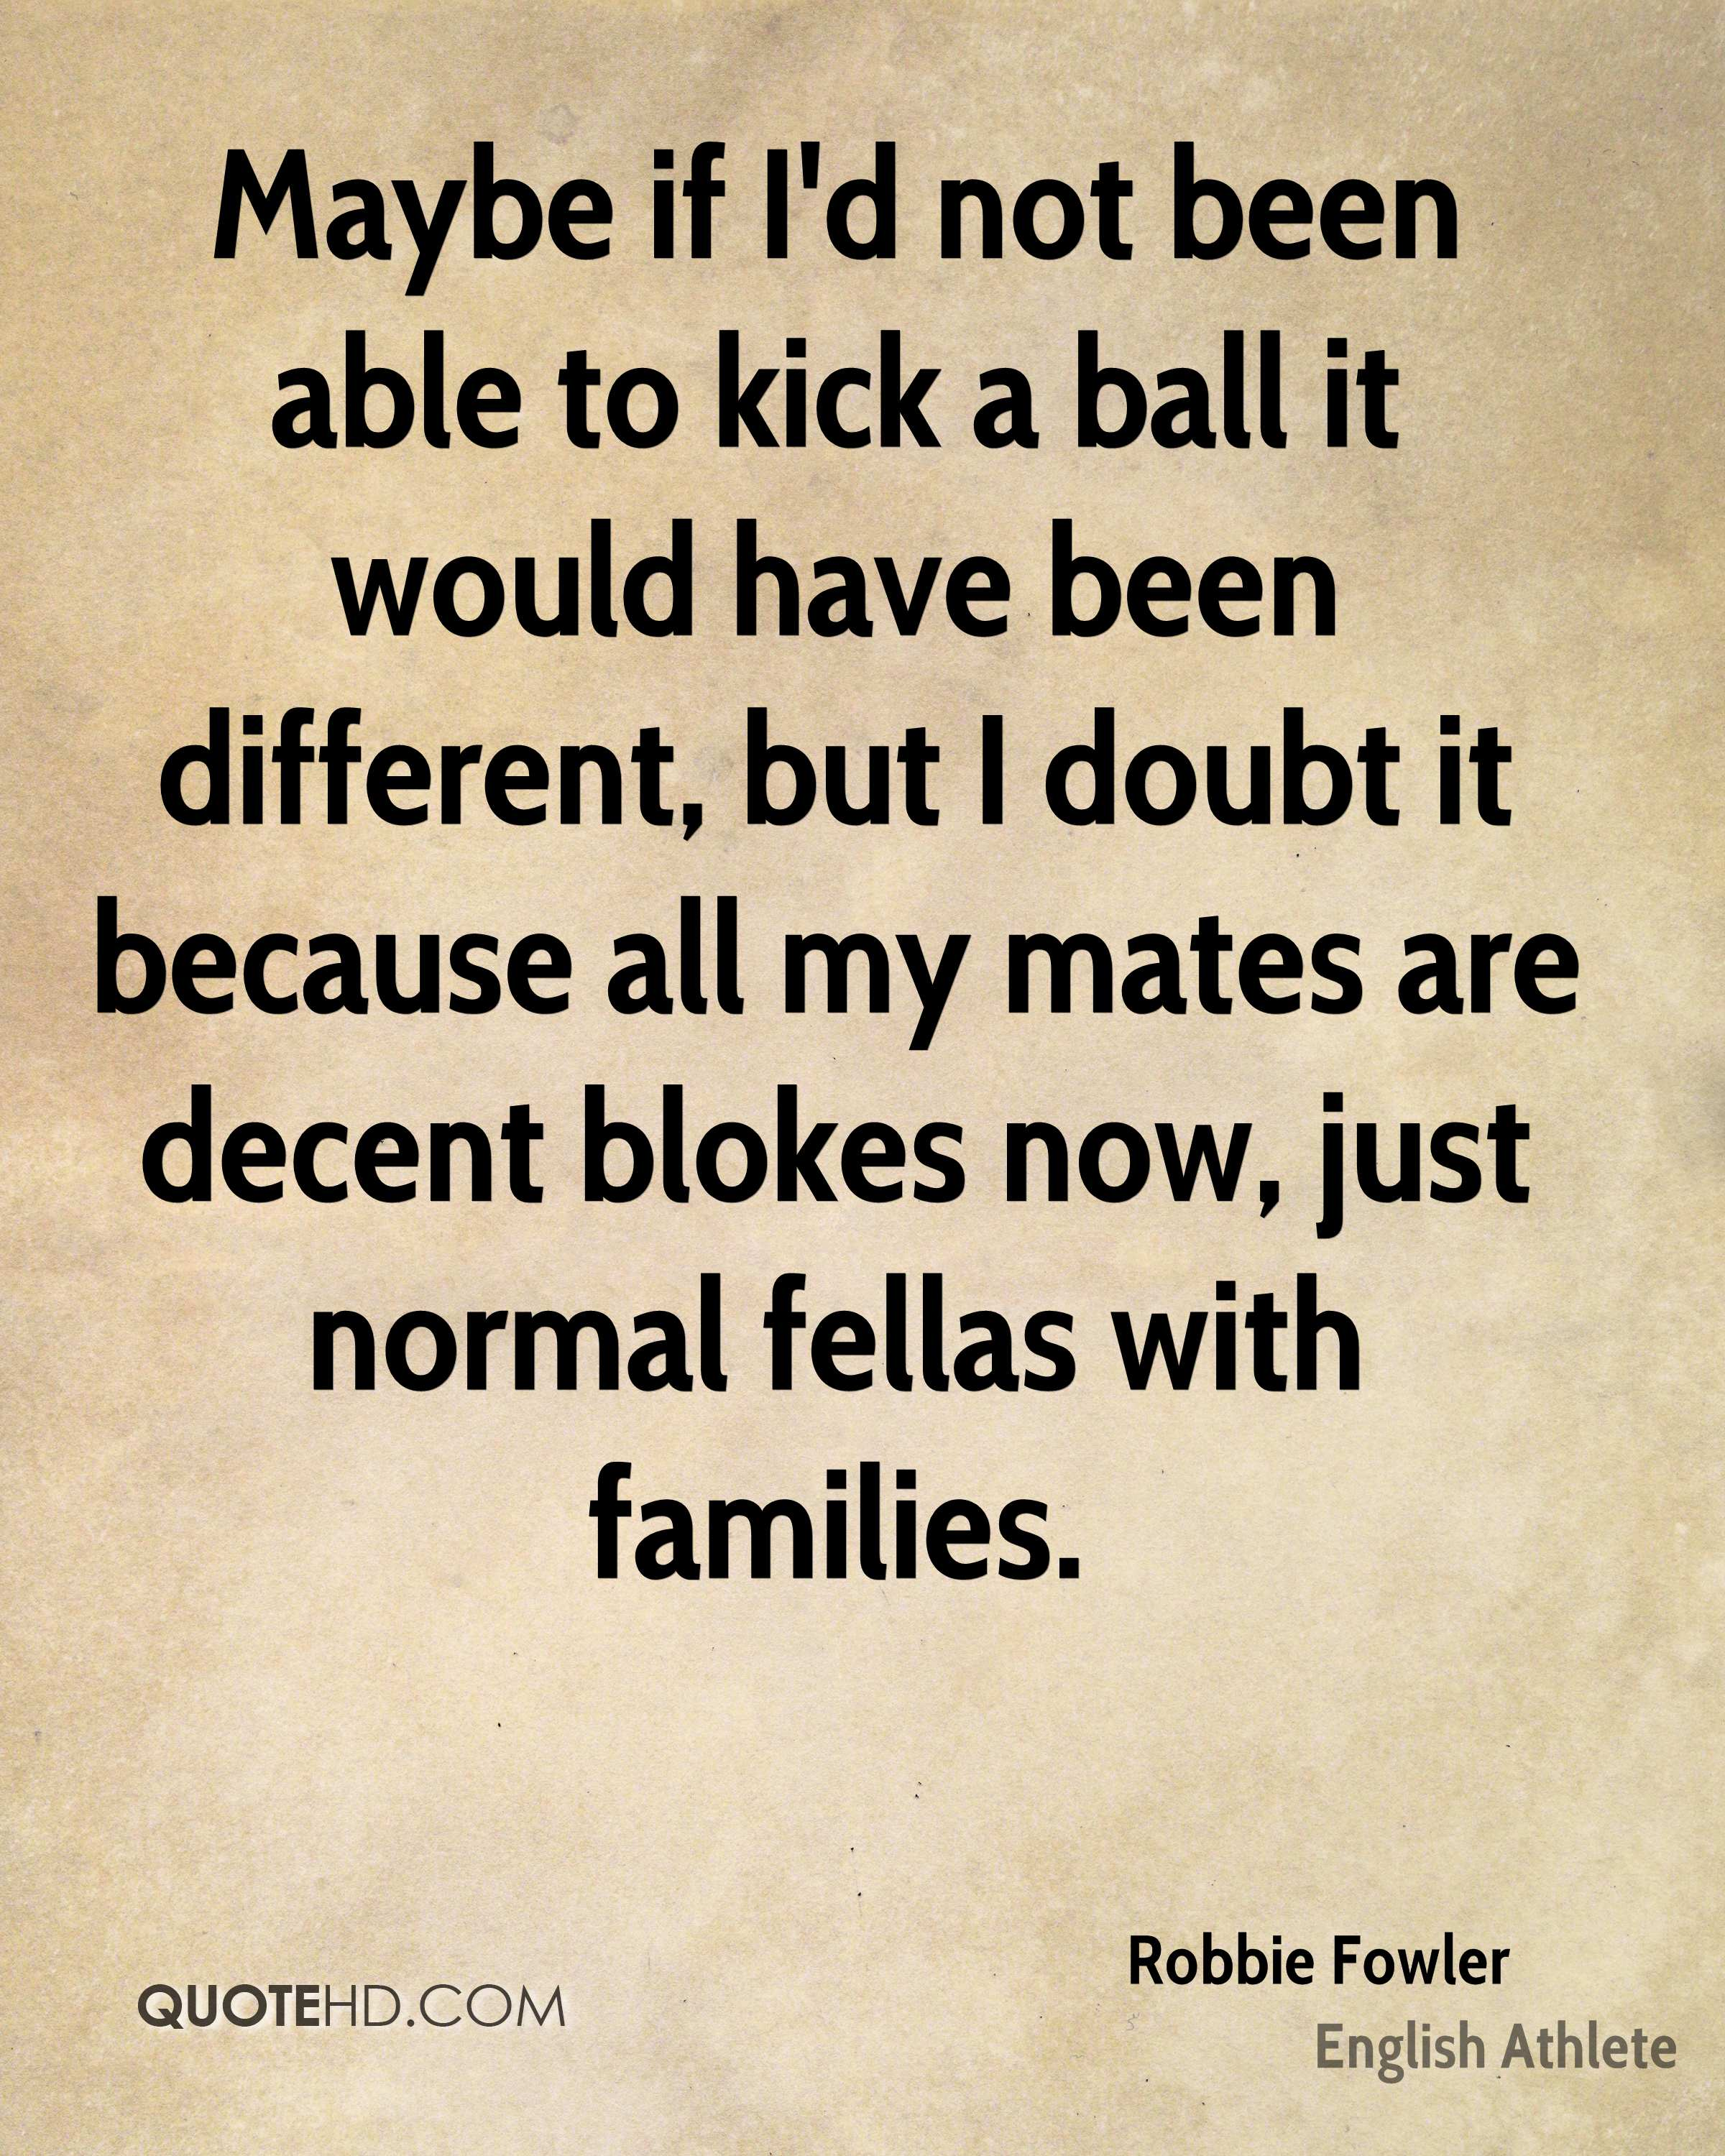 Maybe if I'd not been able to kick a ball it would have been different, but I doubt it because all my mates are decent blokes now, just normal fellas with families.